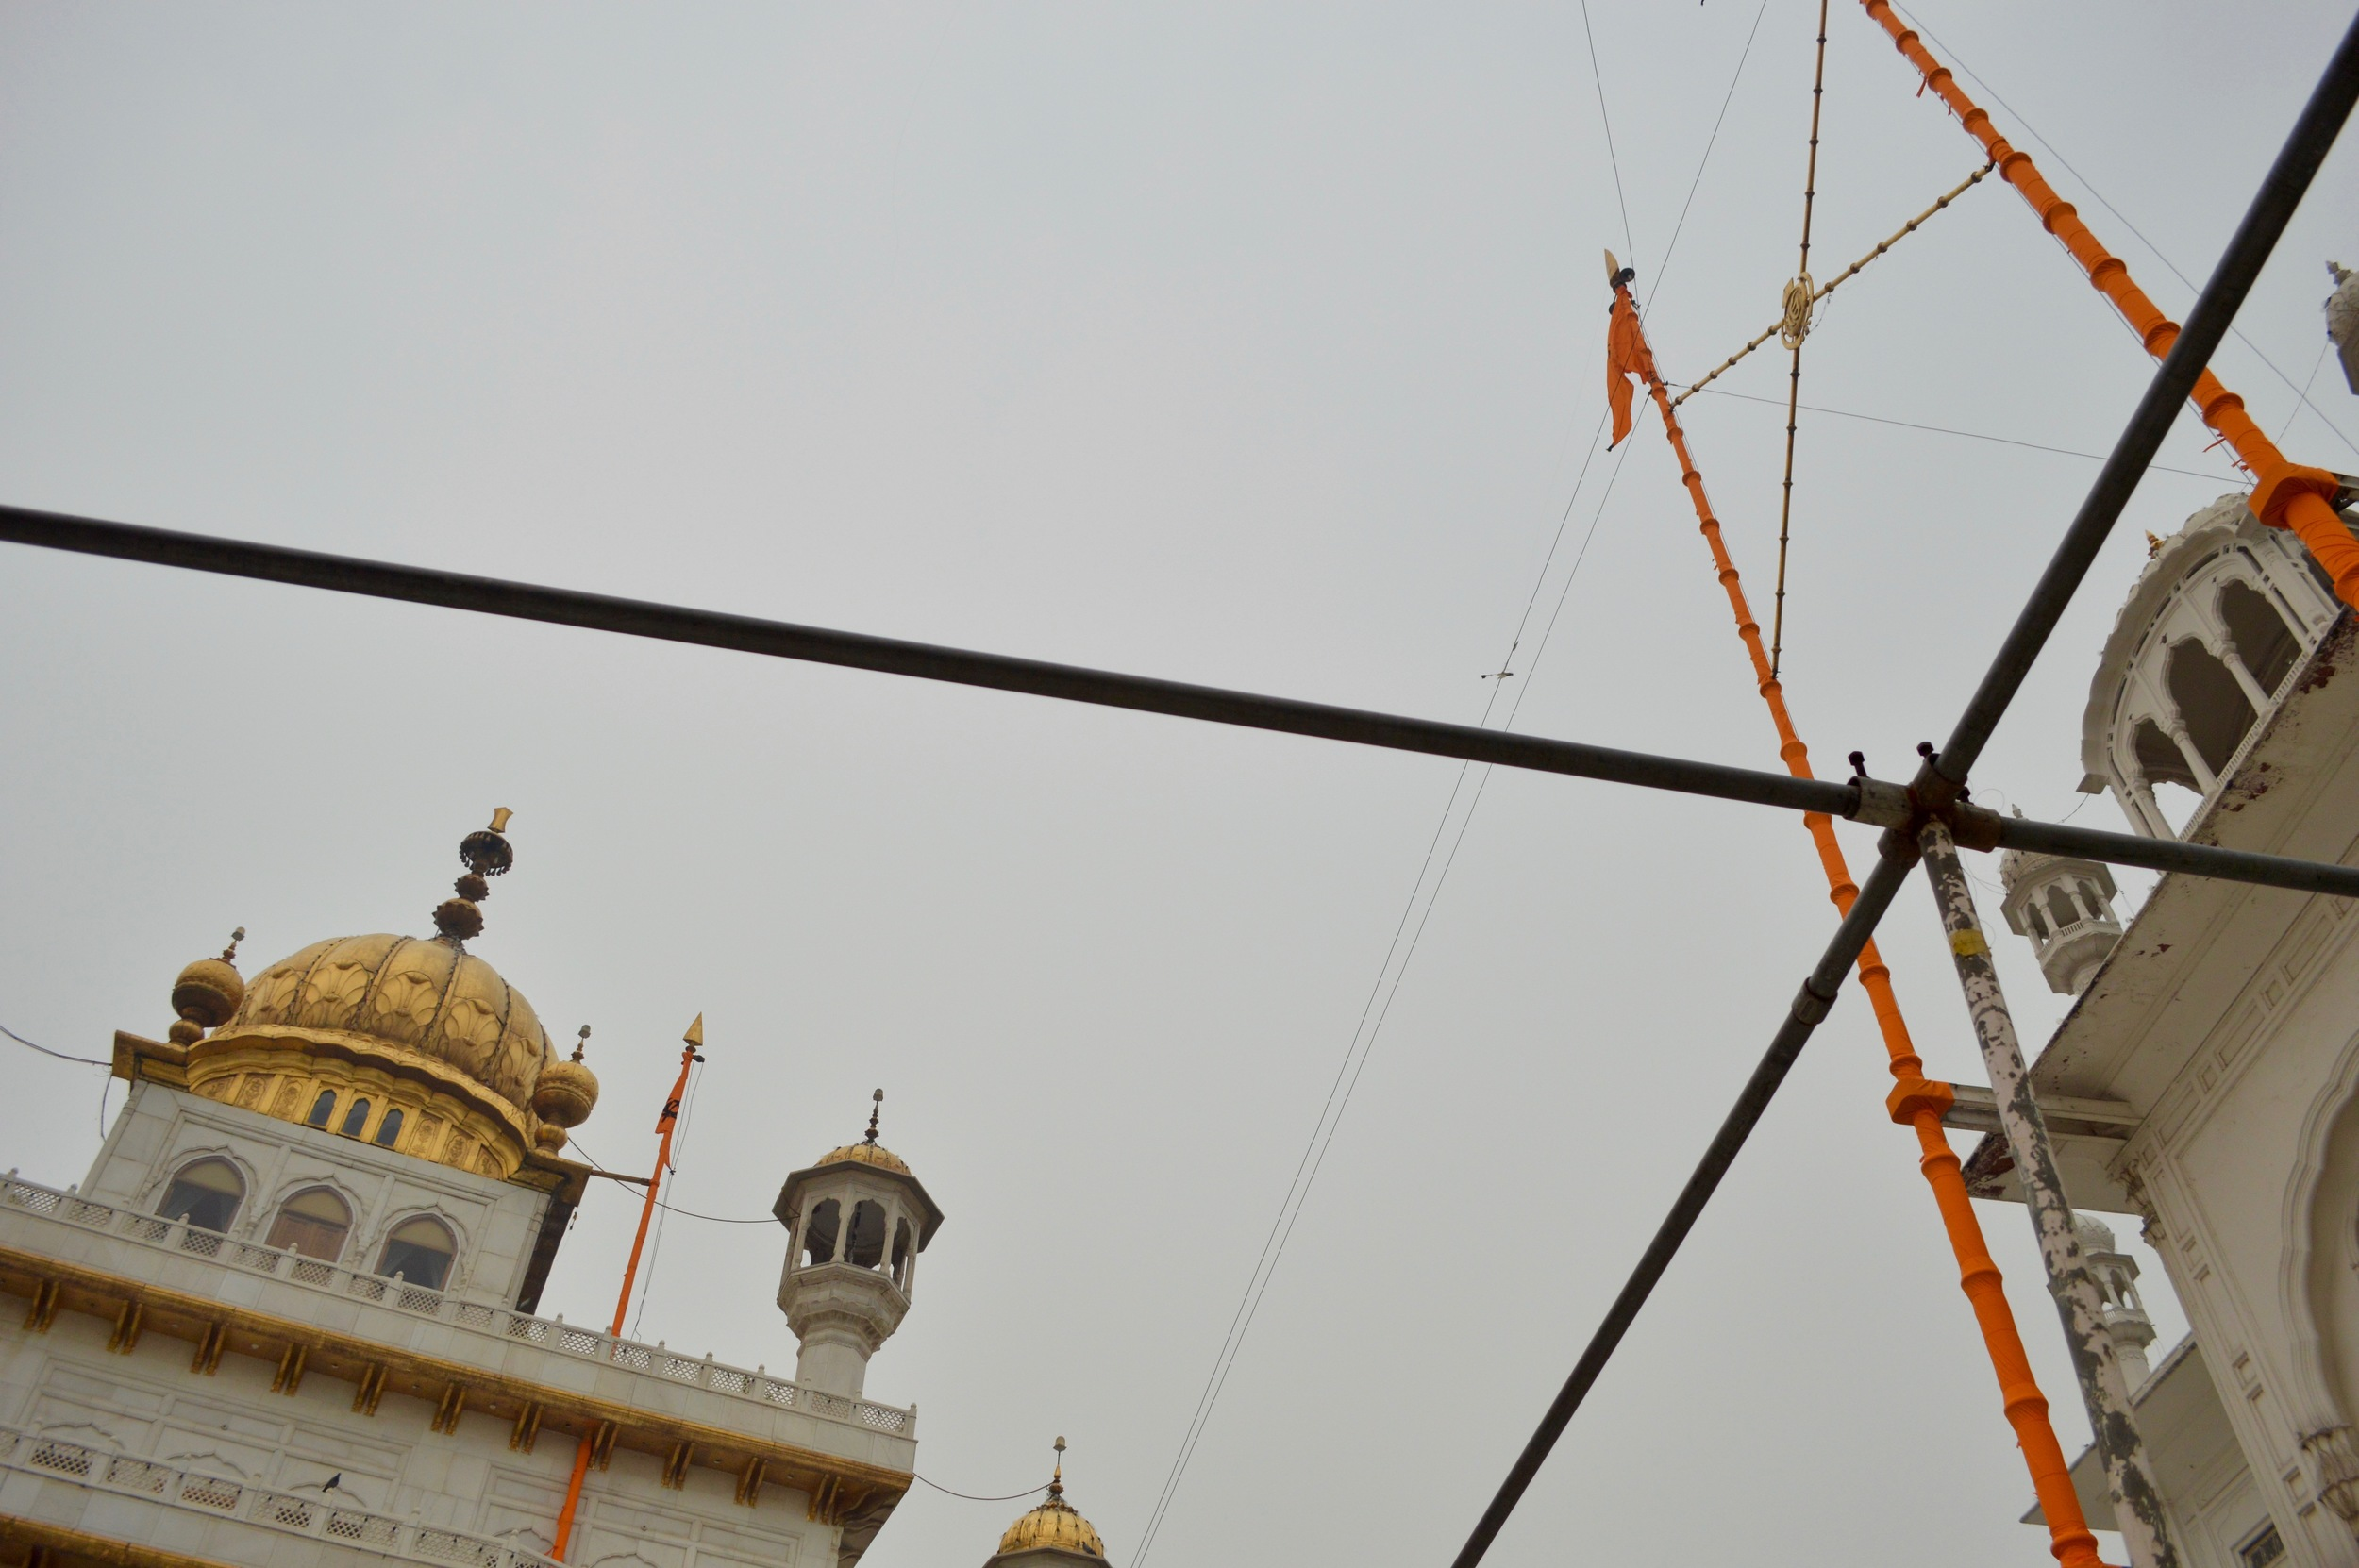 Looking up at Harmandir Sahib Complex, Amritsar.